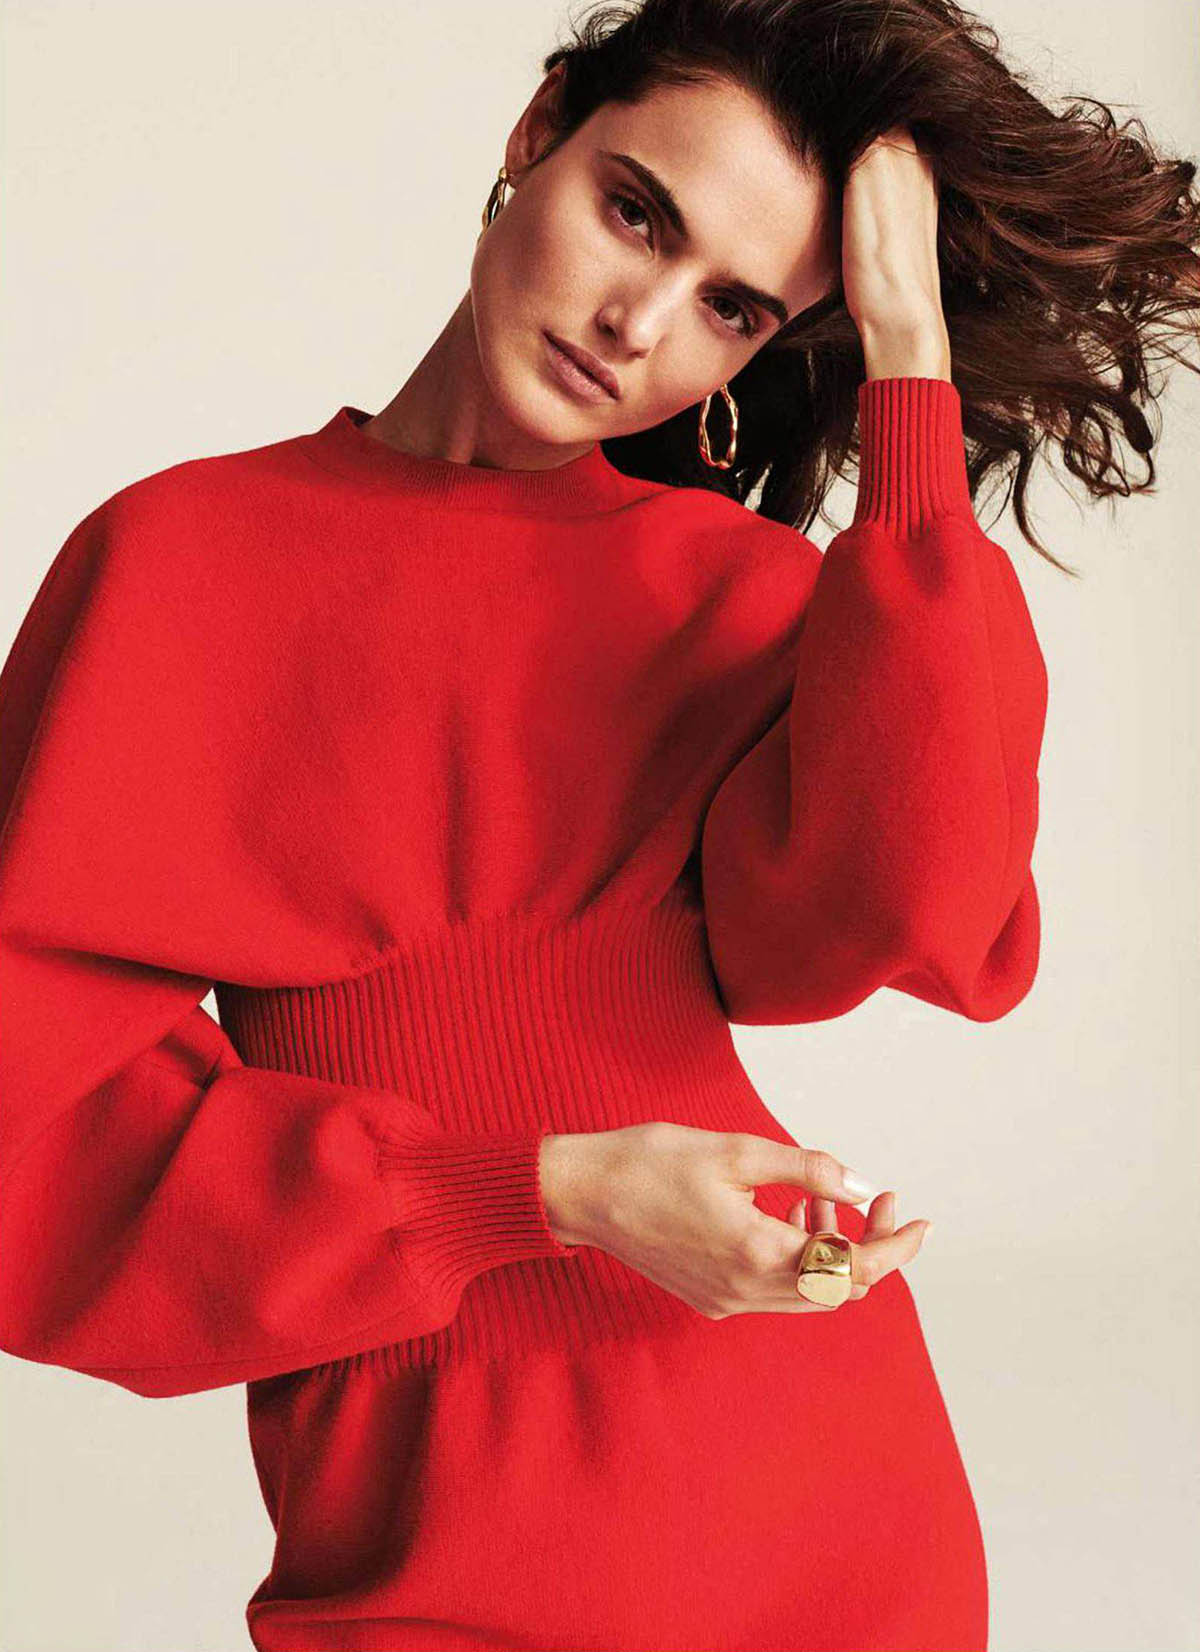 Blanca Padilla covers Elle France March 26th, 2021 by Philip Gay